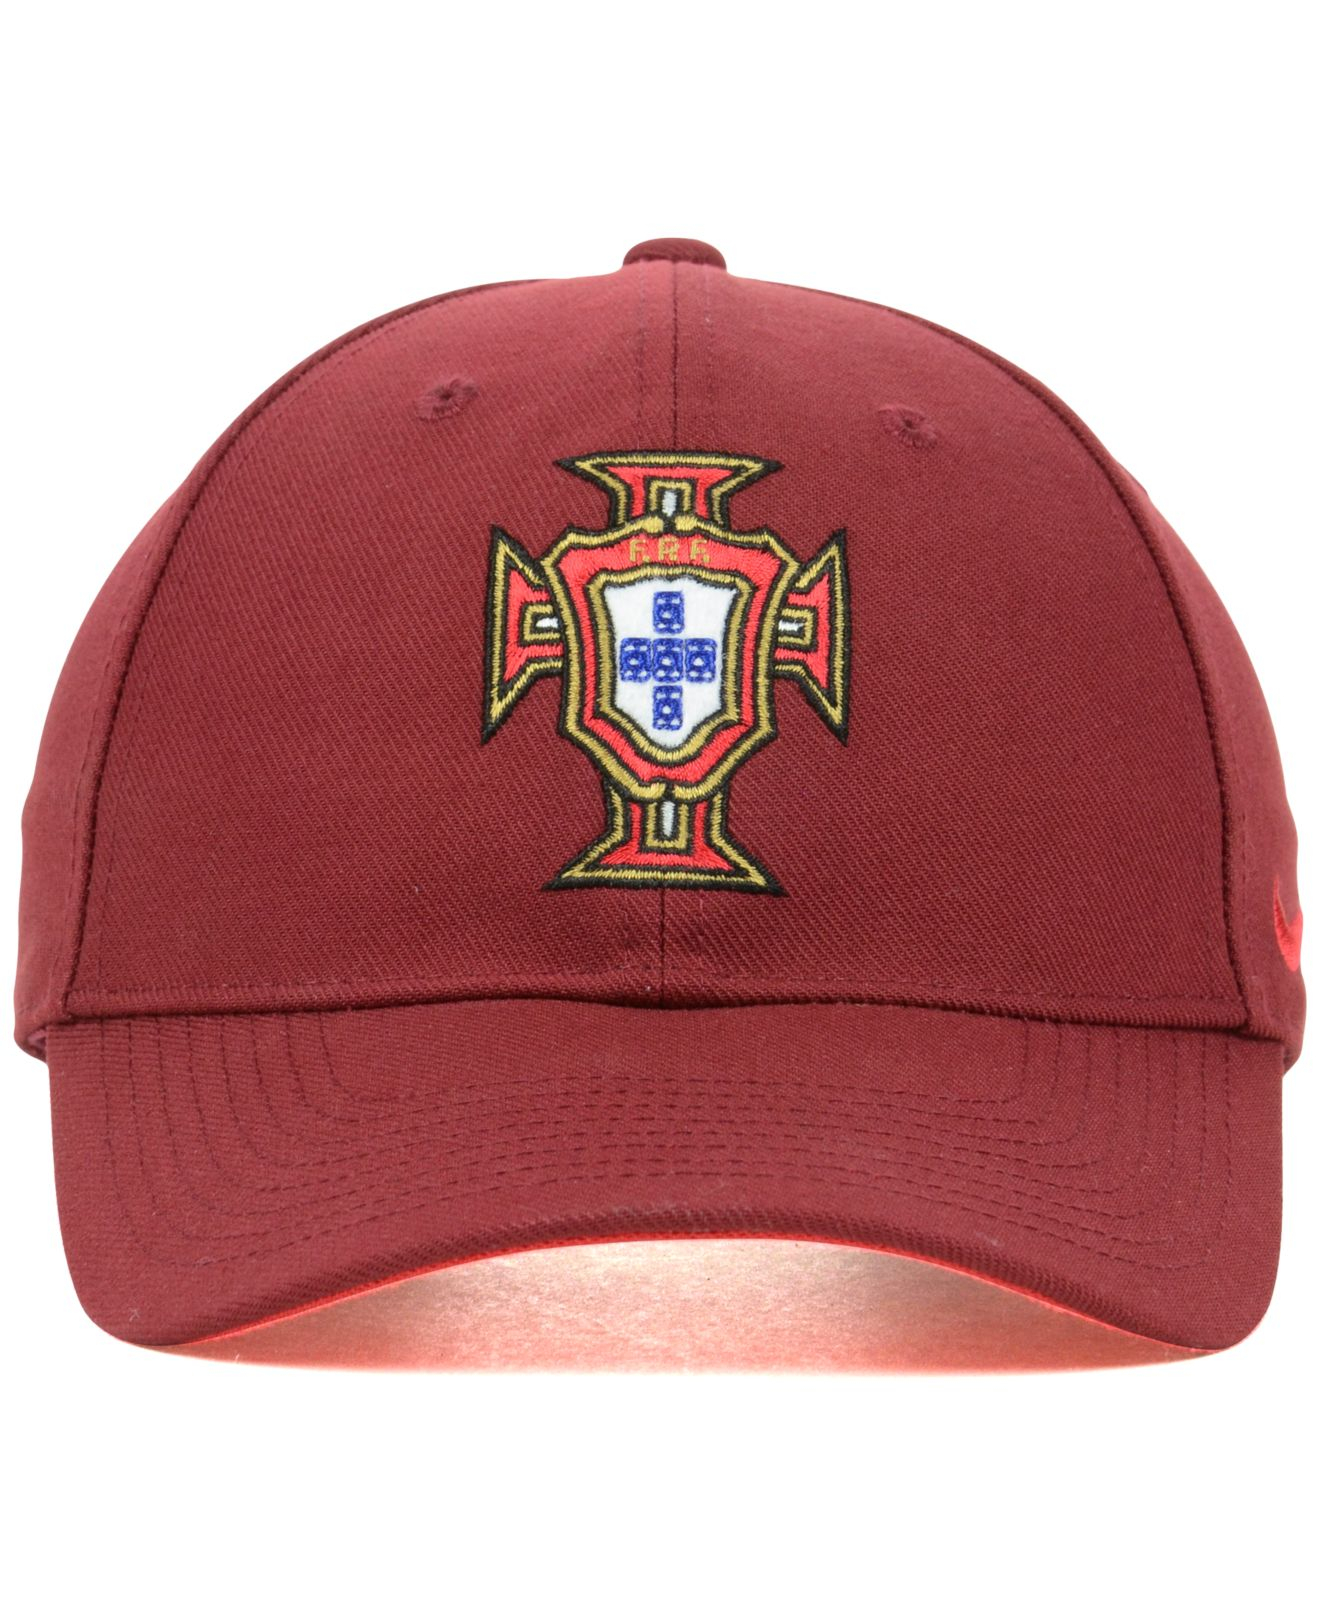 48baab248e4 Lyst - Nike Portugal National Team Core World Cup Cap in Red for Men